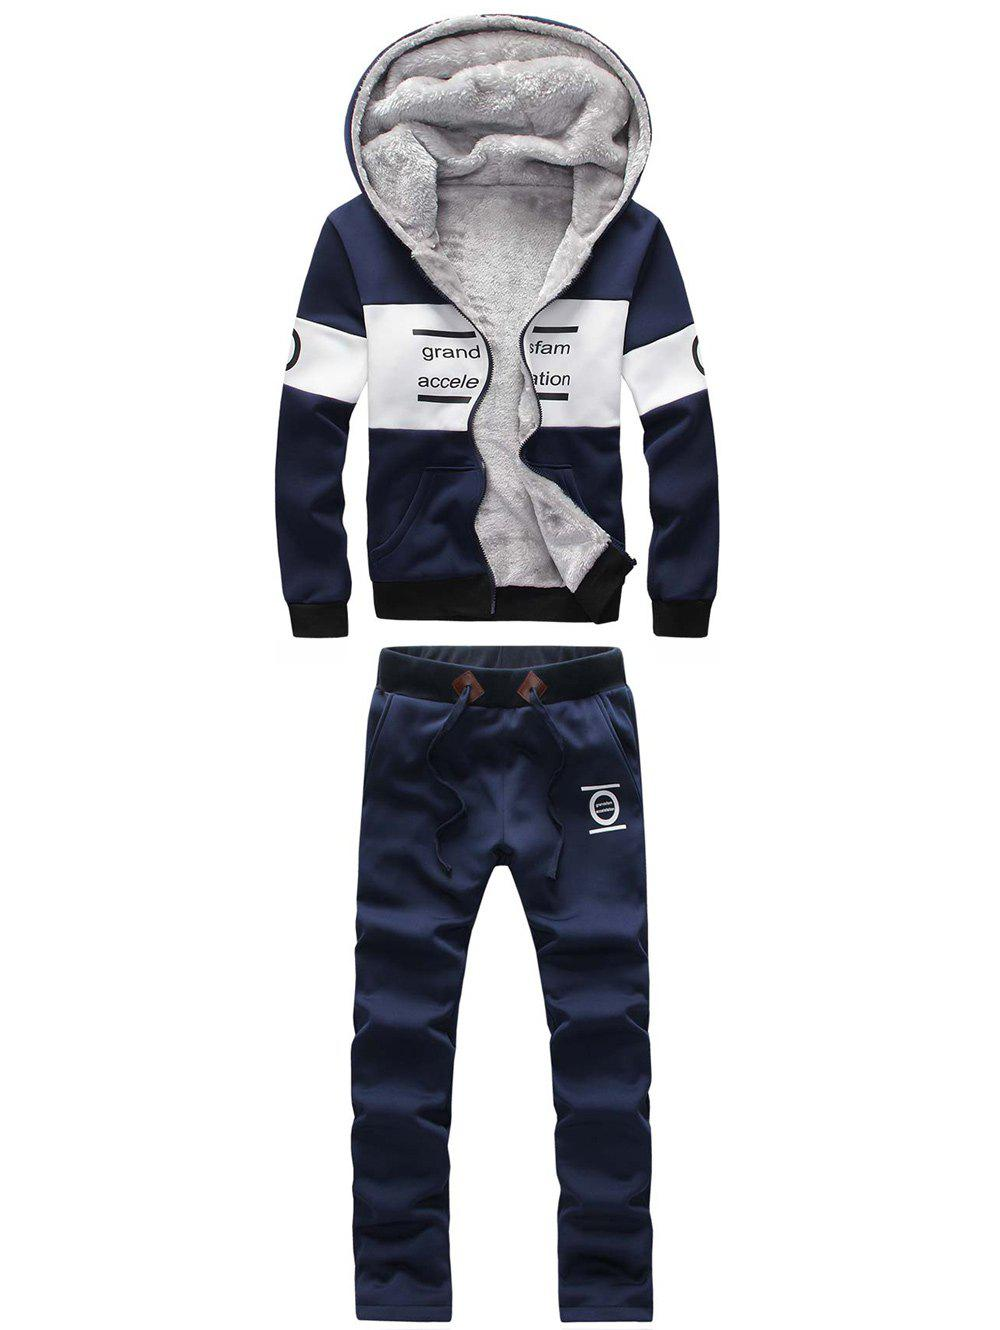 Zip Up Graphic Printed Hoodie and Sweatpants Twinset free shipping 10pcs ds1868 01